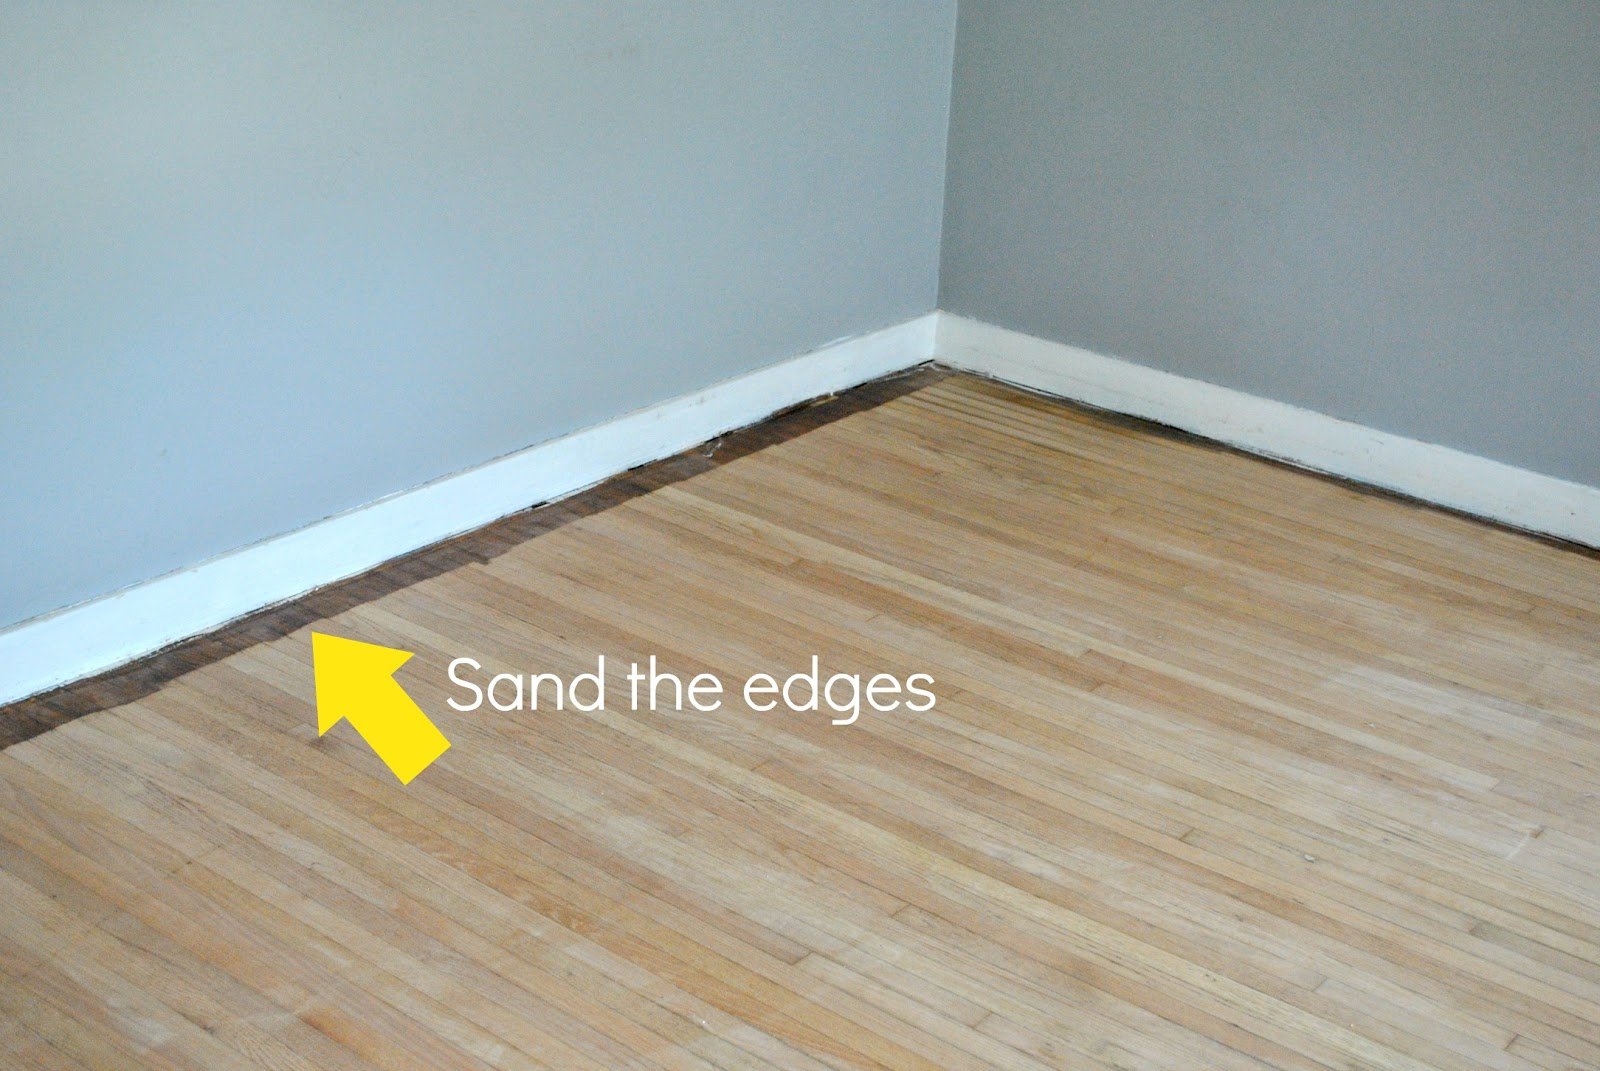 How to remove carpet and refinish wood floors part 1 for 1 floor